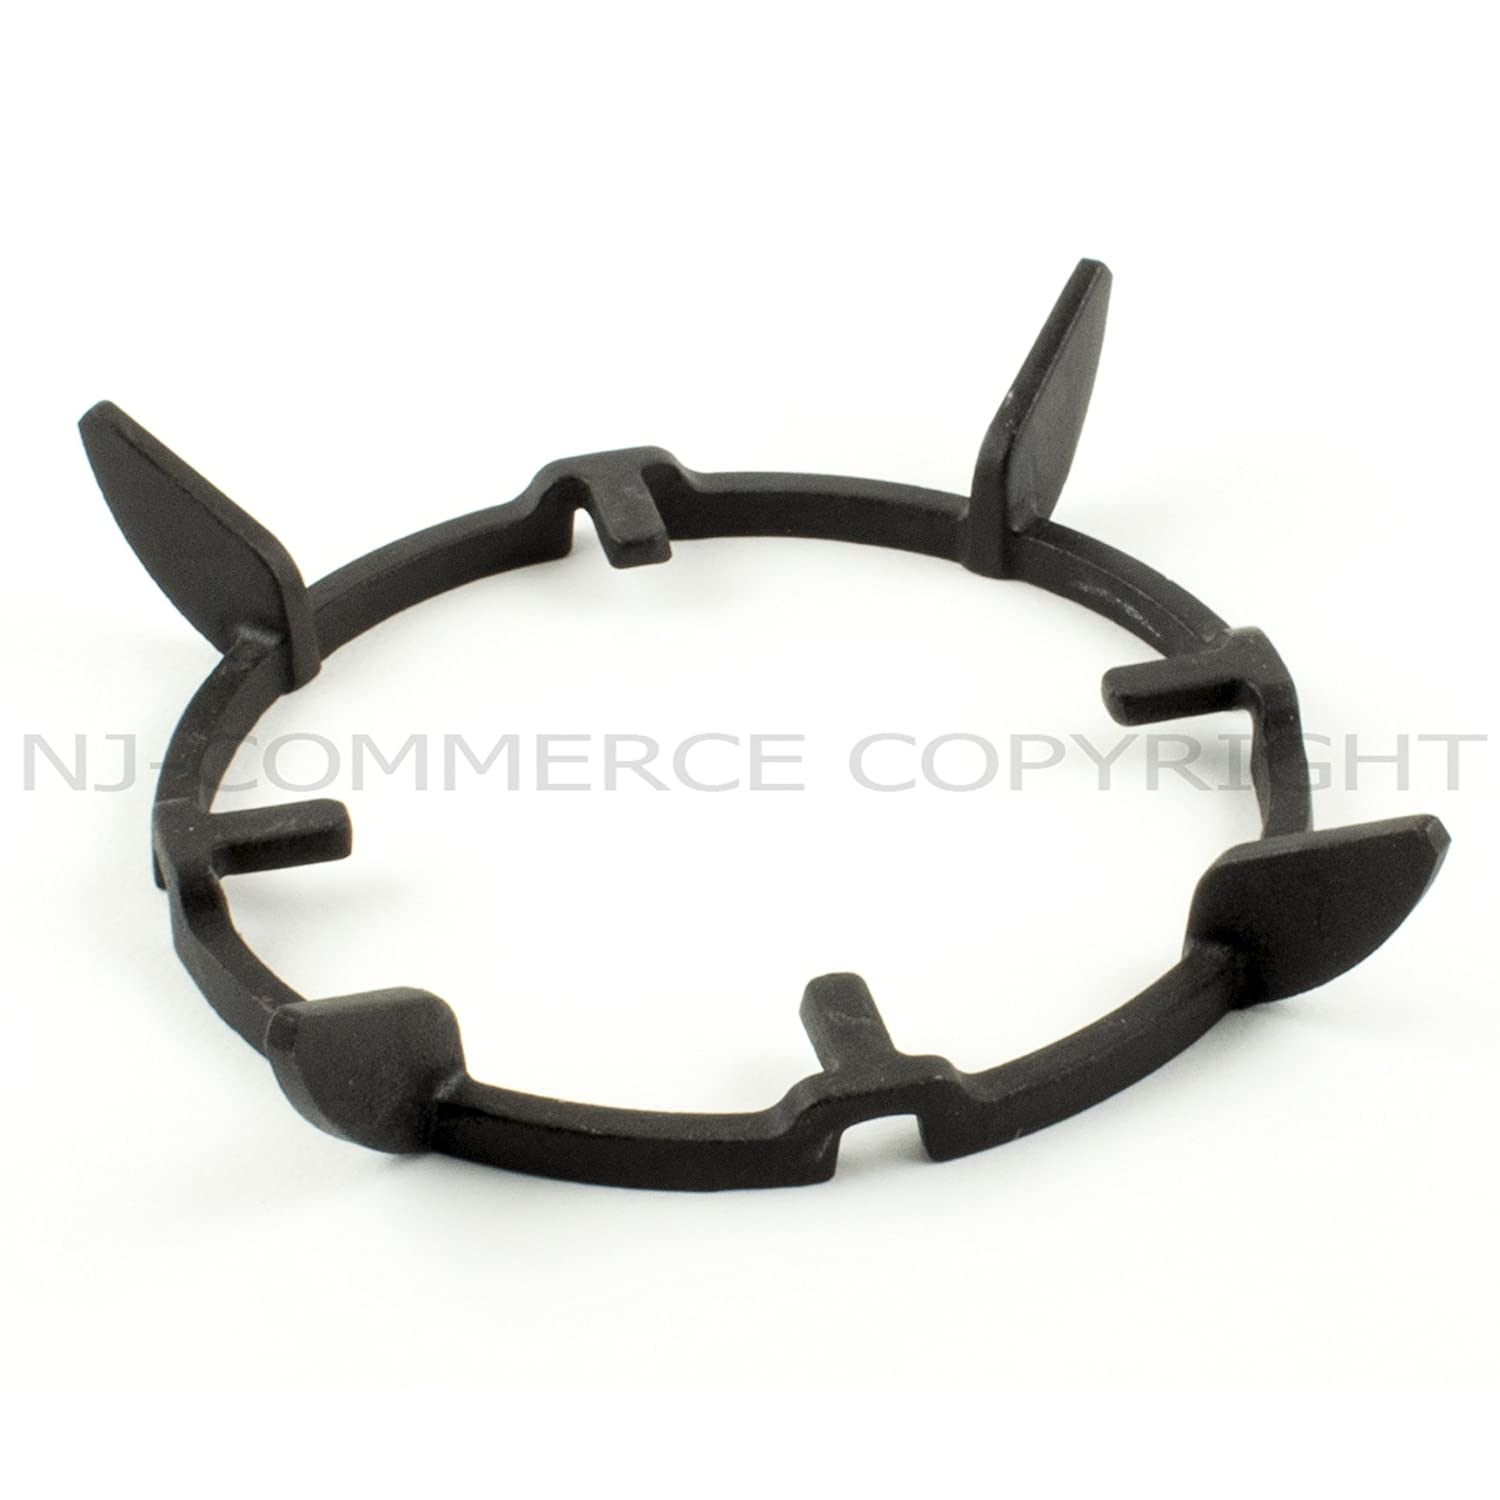 Cast Iron Wok Support Ring Cooktop Range Pan Holder Stand for Gas Hob